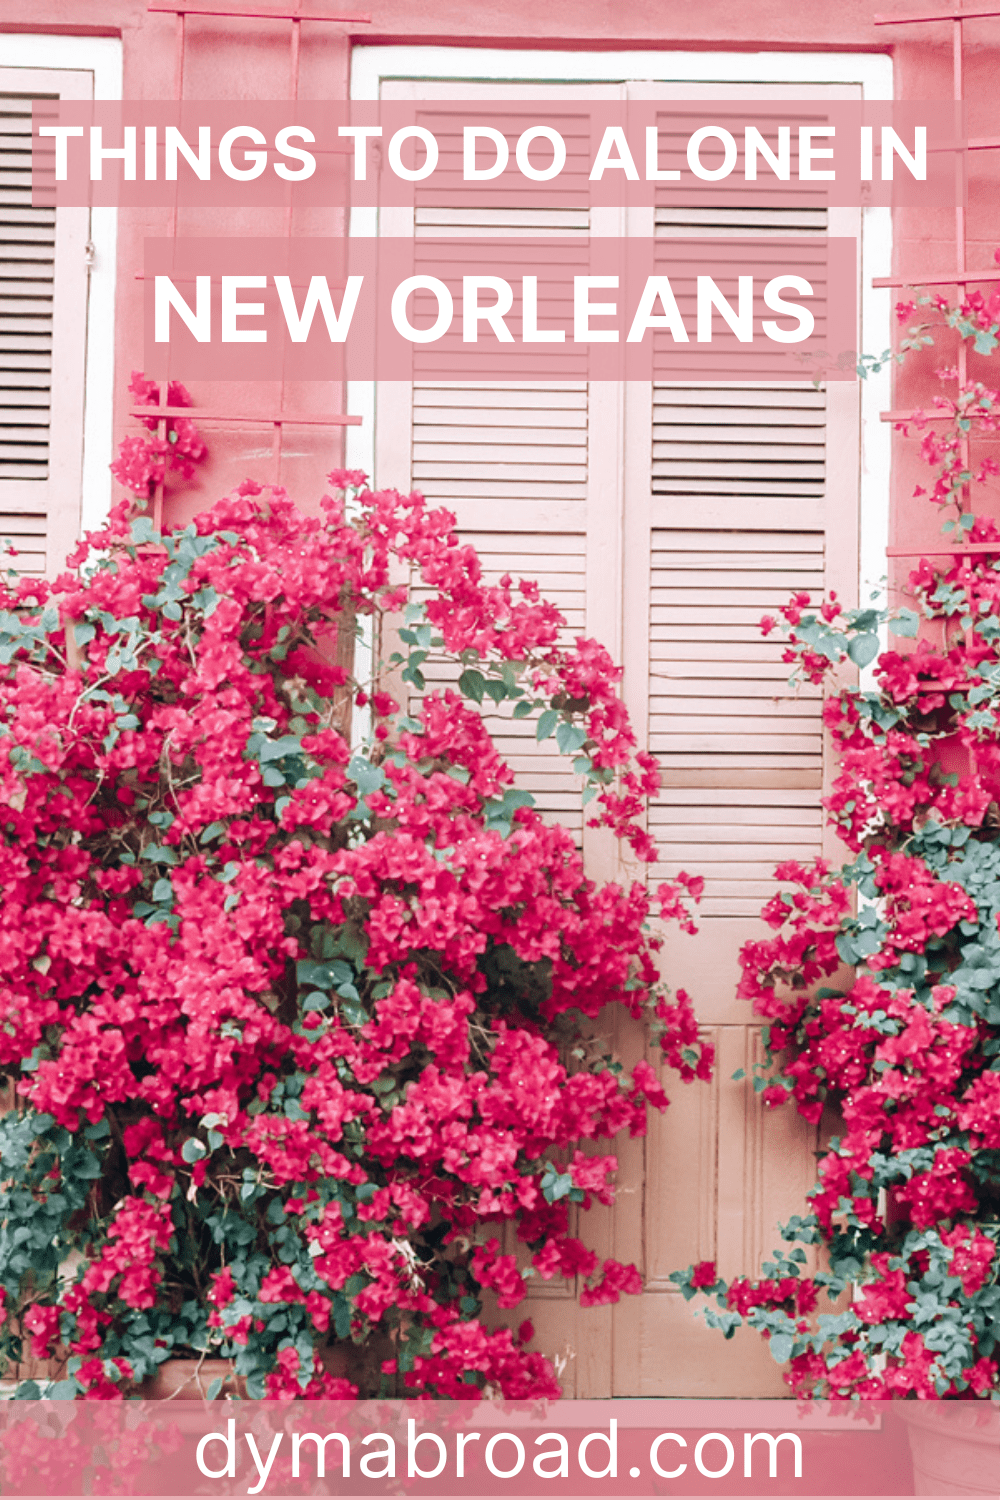 Things to do alone in New Orleans Pinterest image